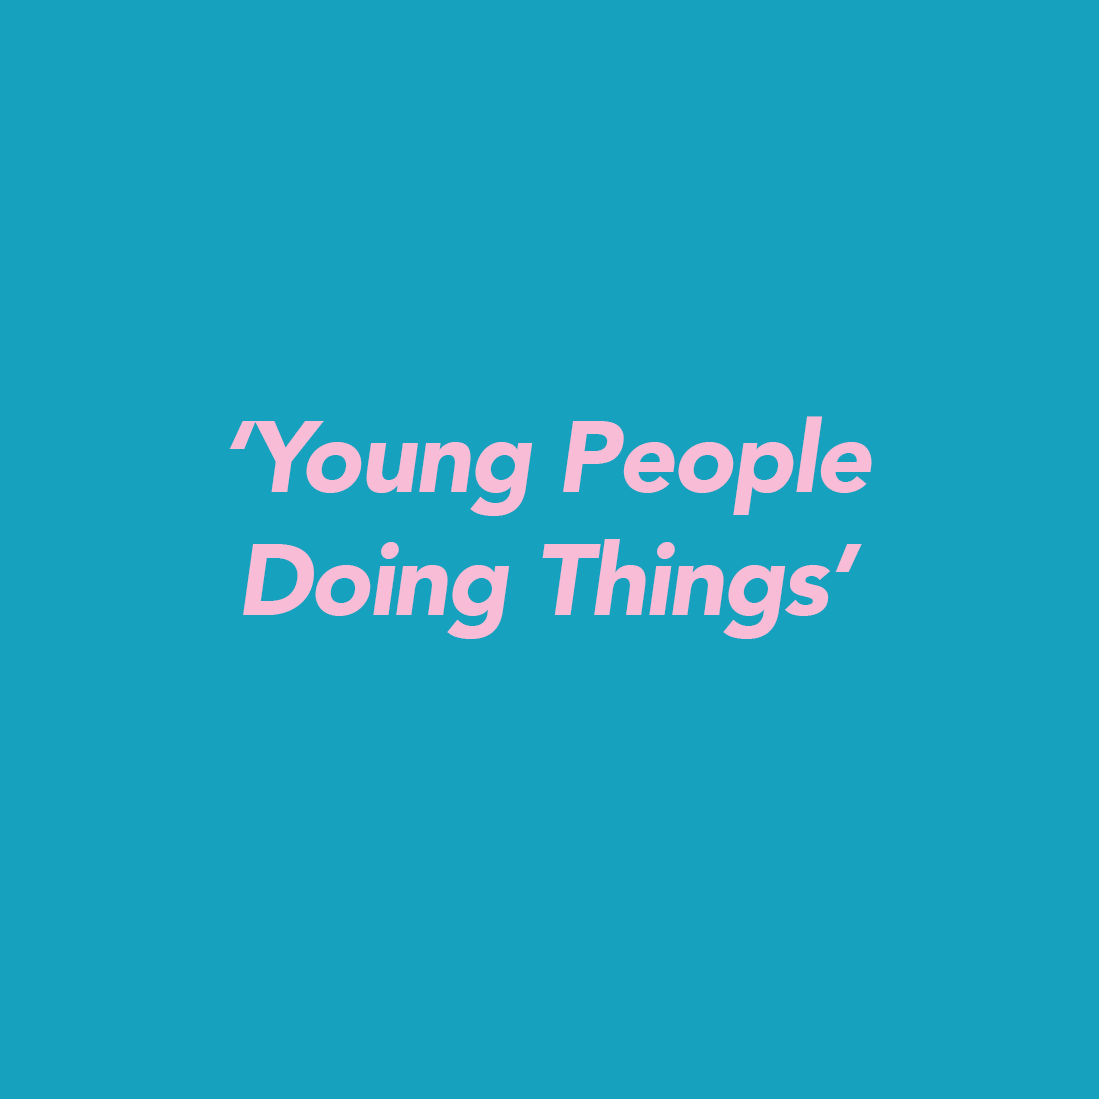 Young People Doing Things  show image